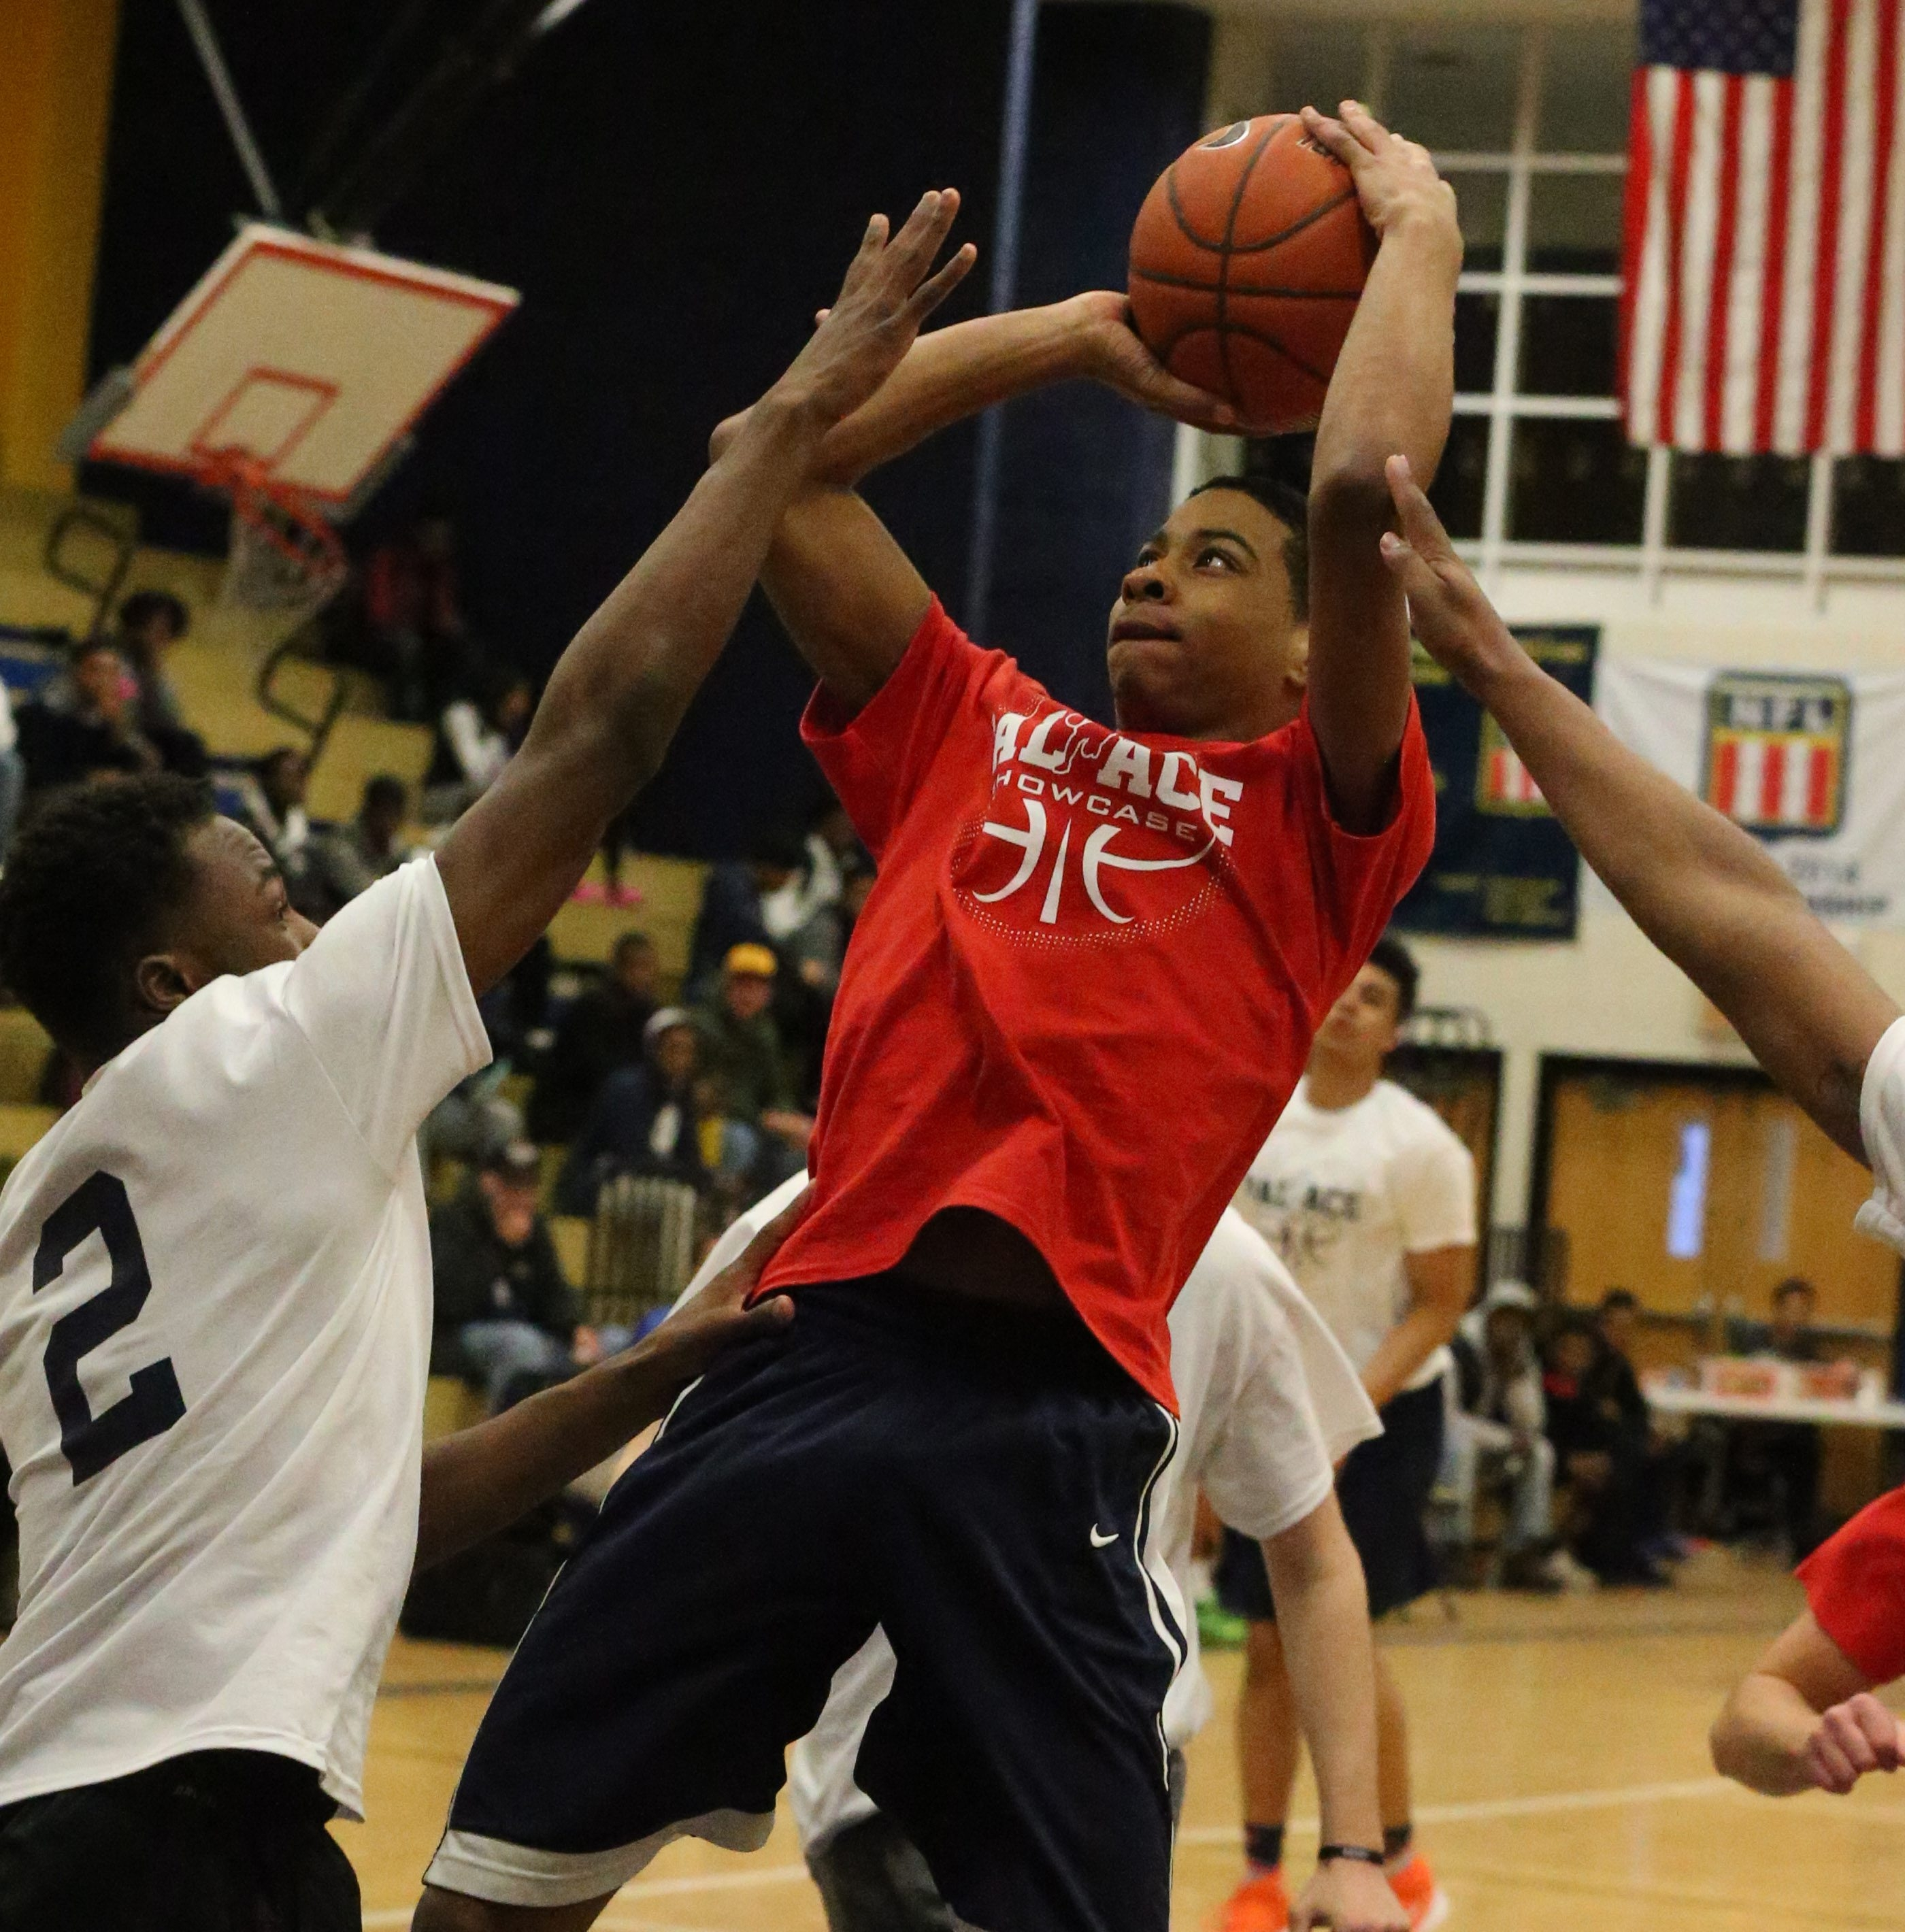 North's Qeyion Williams scores against the South all-stars during the PAL/ACE junior/senior game at Niagara Falls High School.